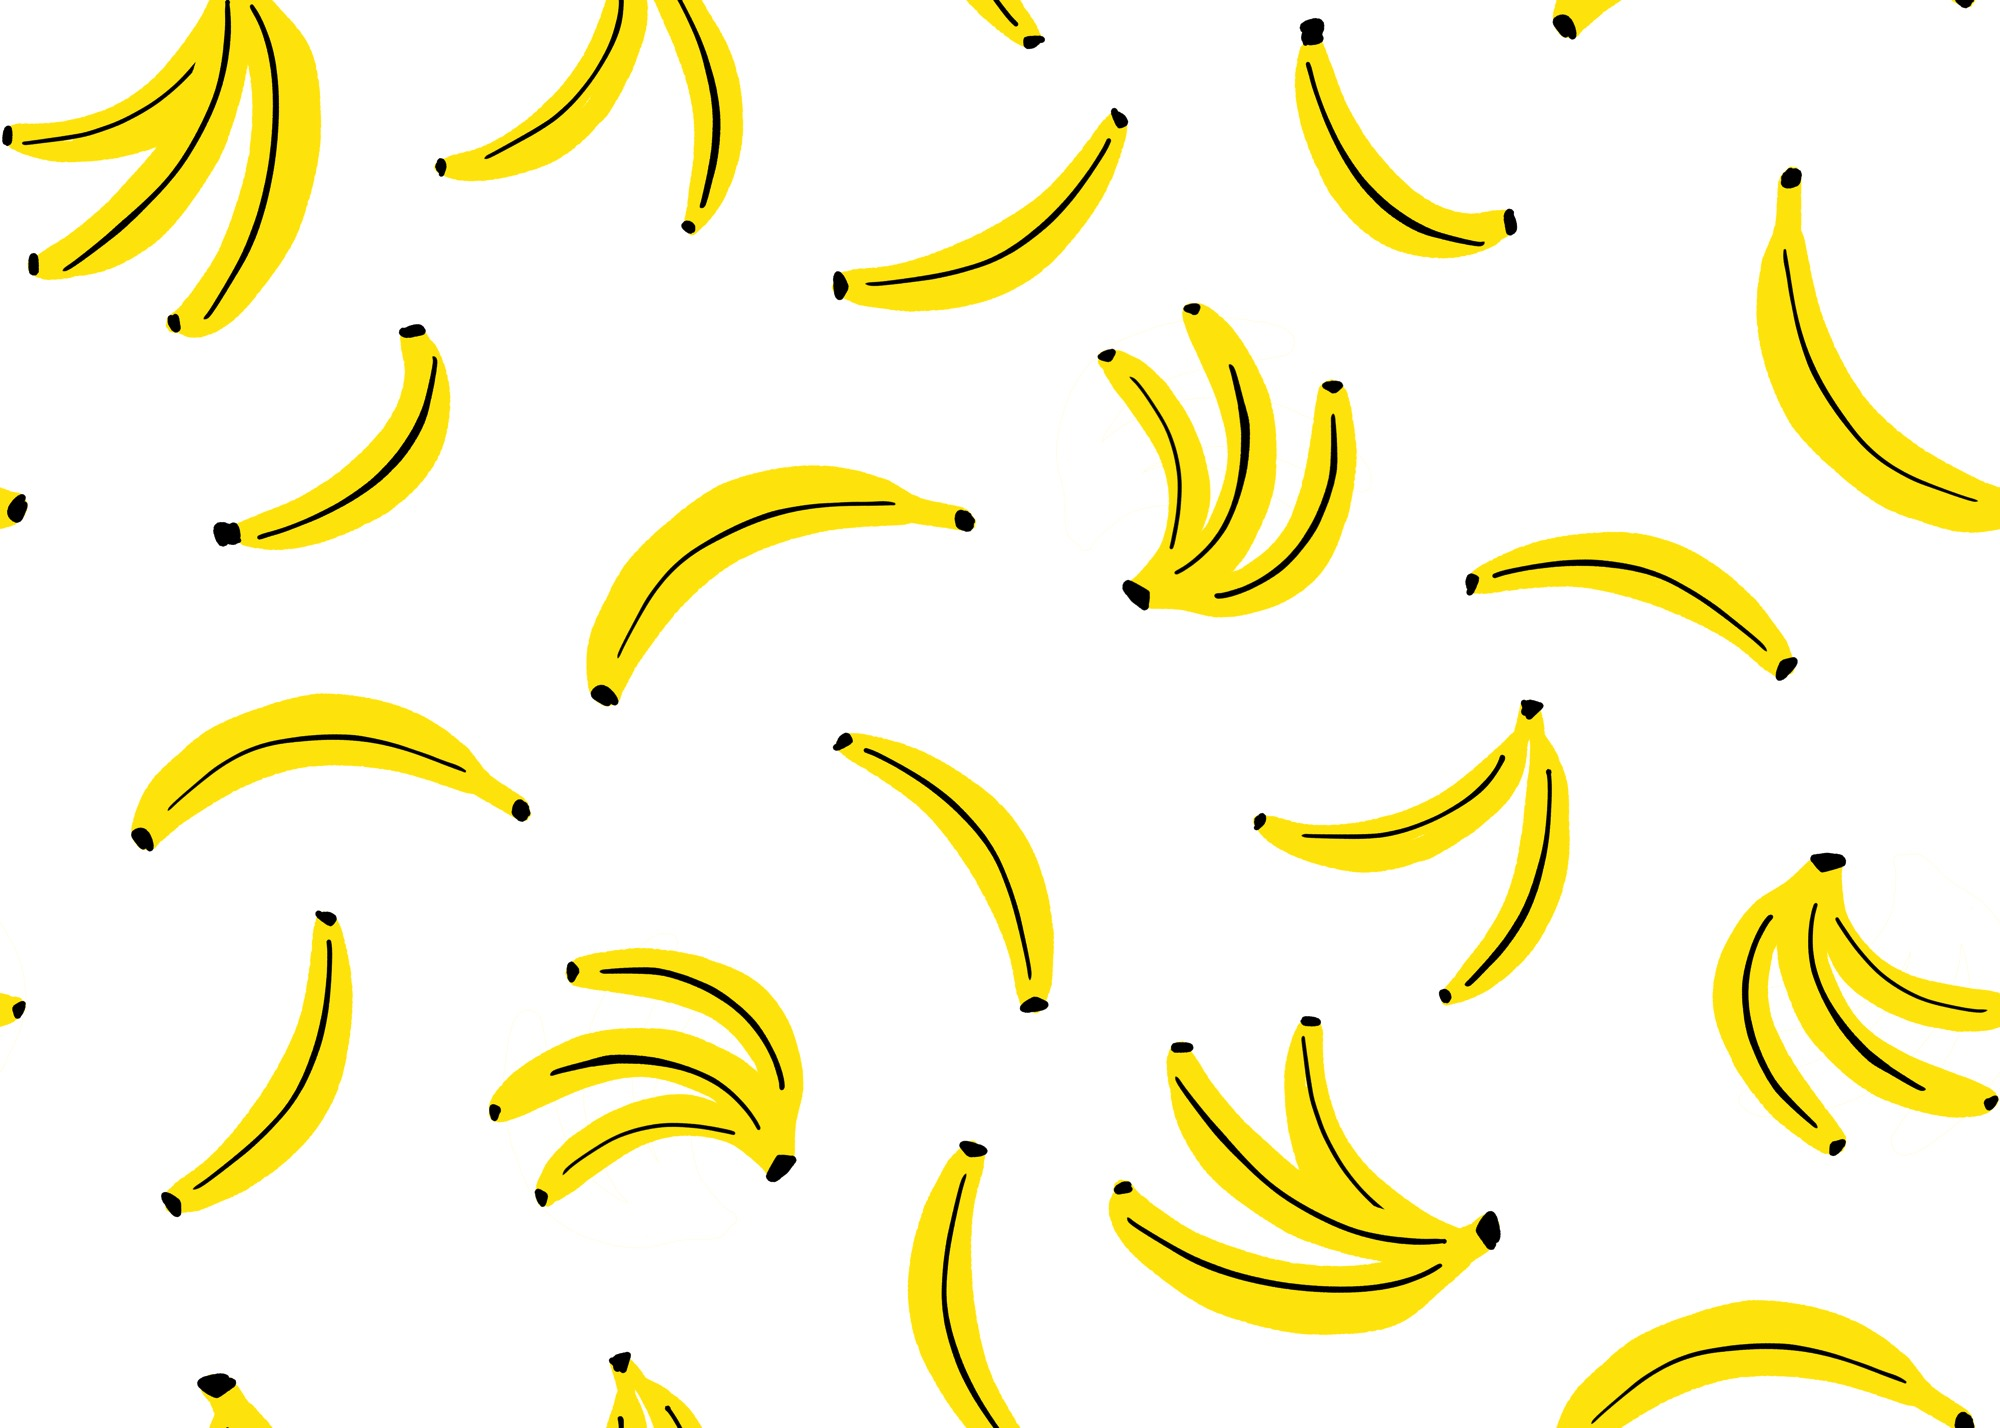 Banana Pattern 2 by Lisa Bardot